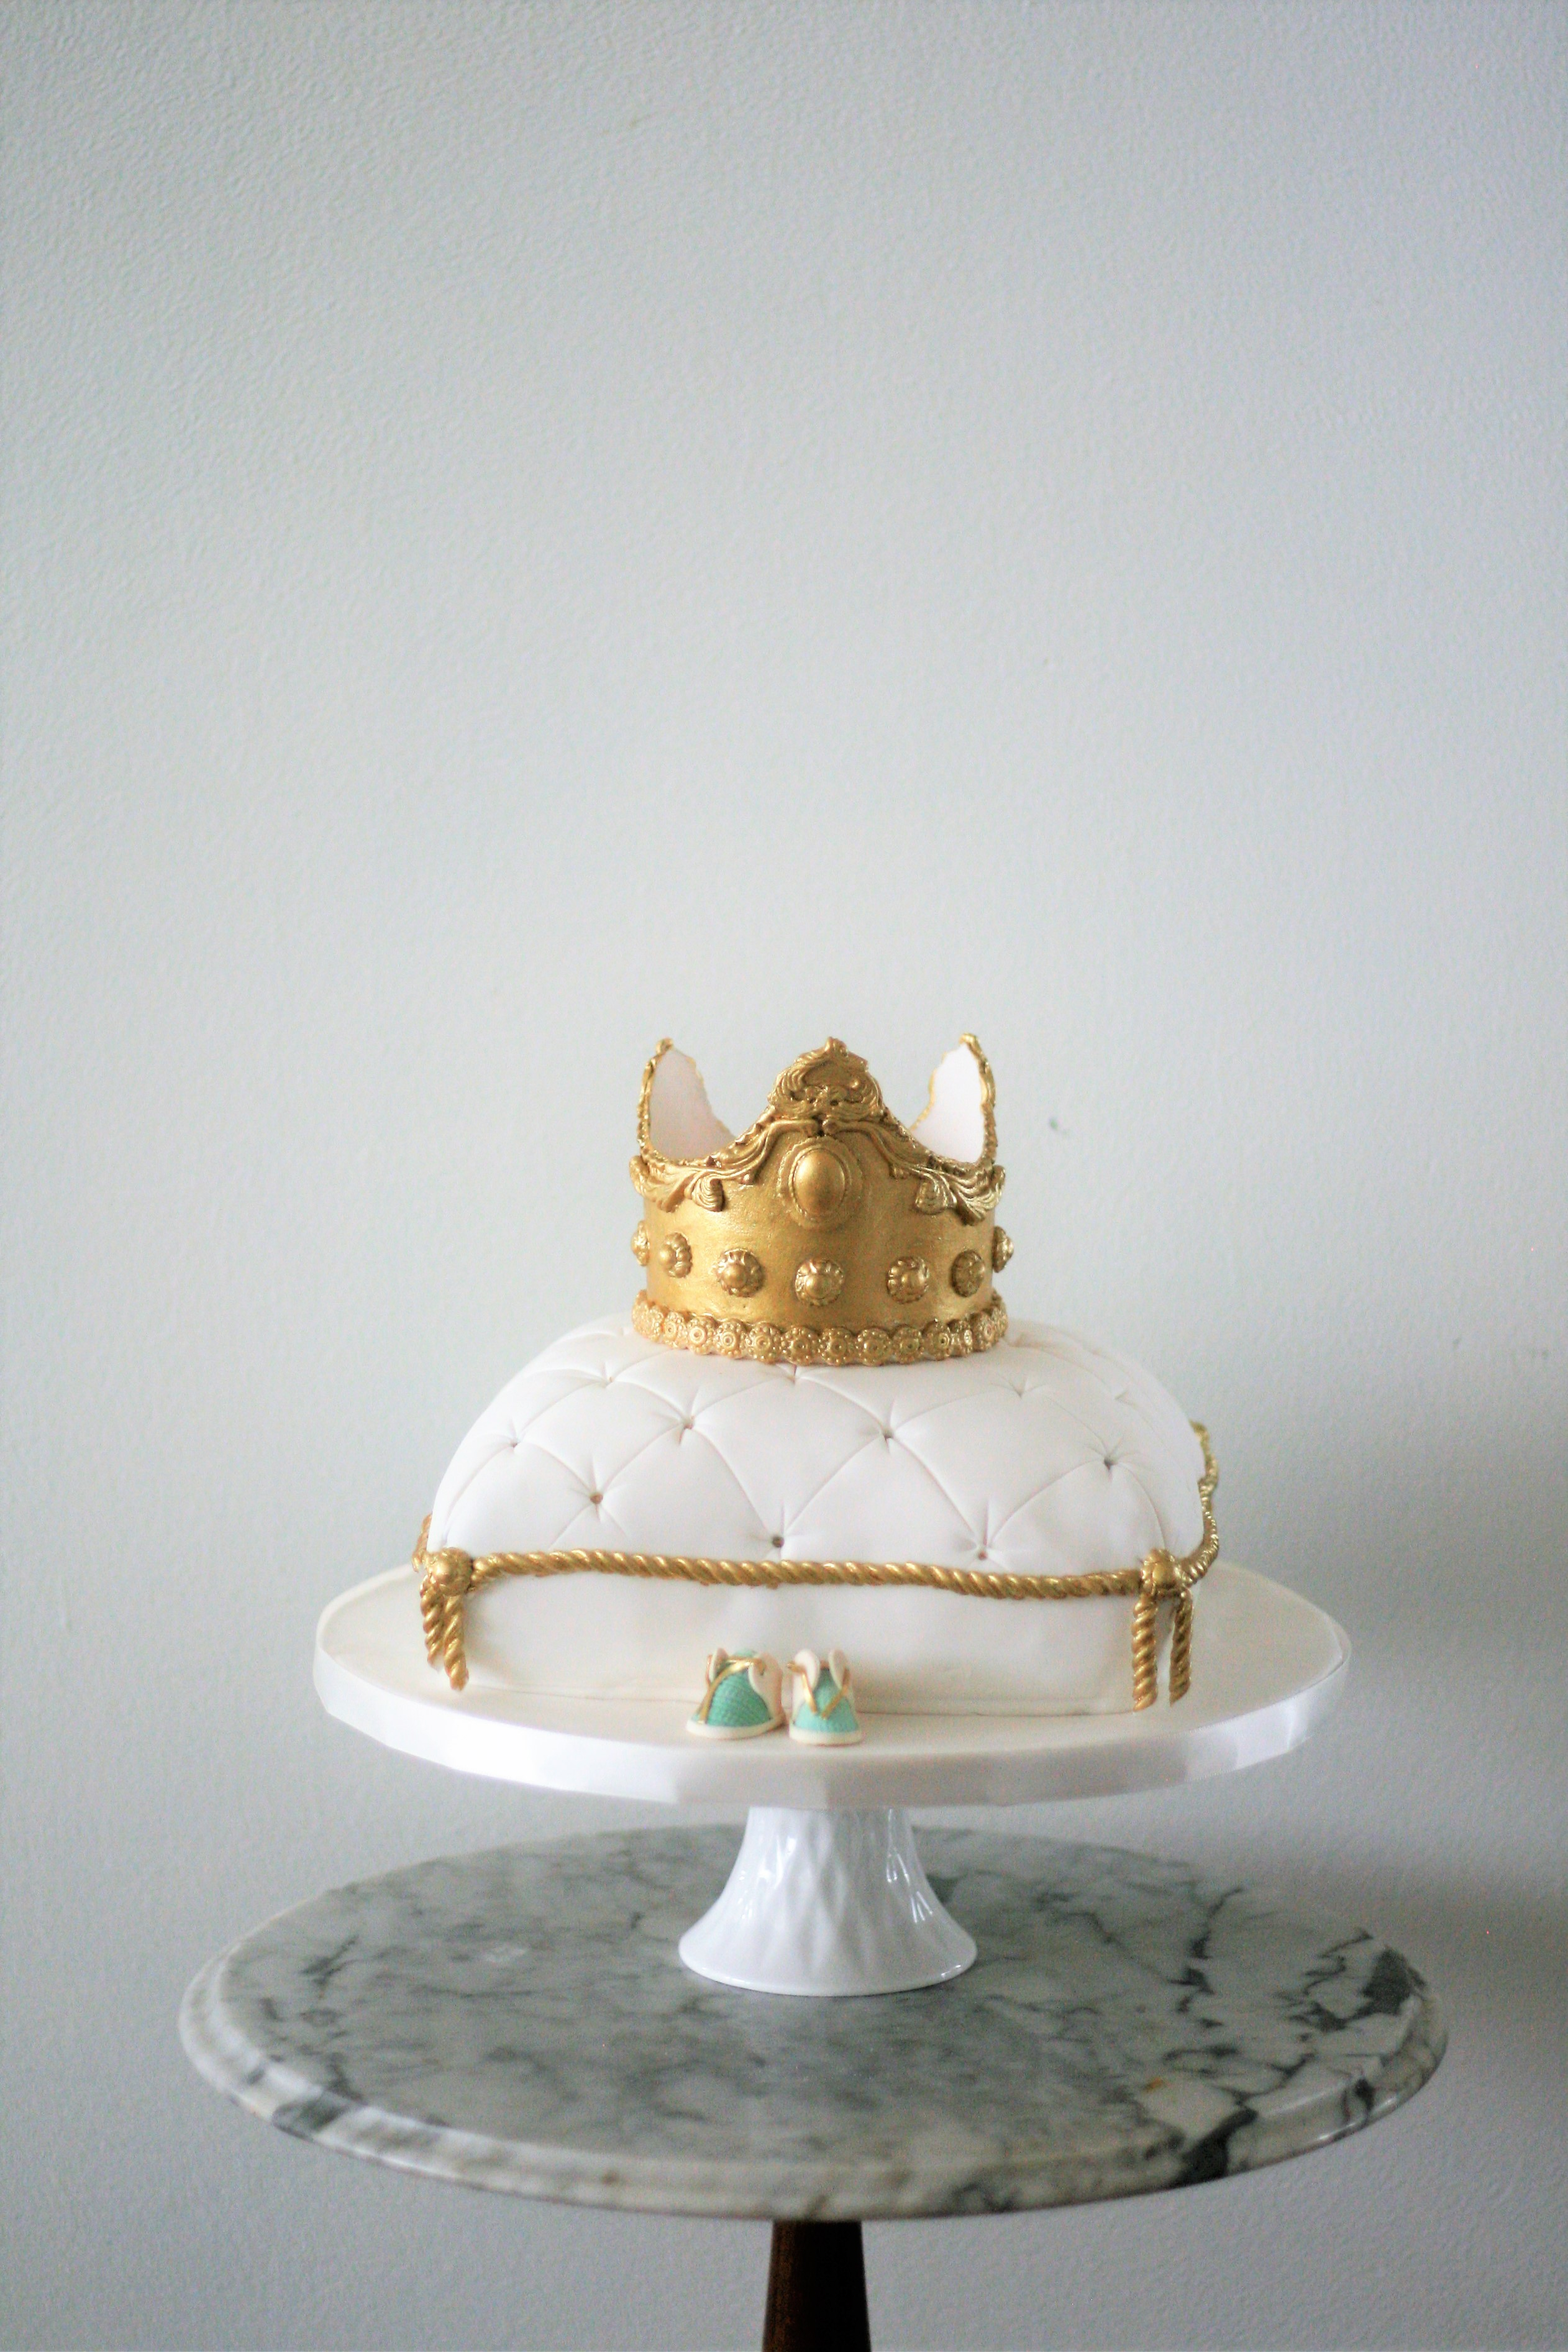 White with gold baby prince pillow cake